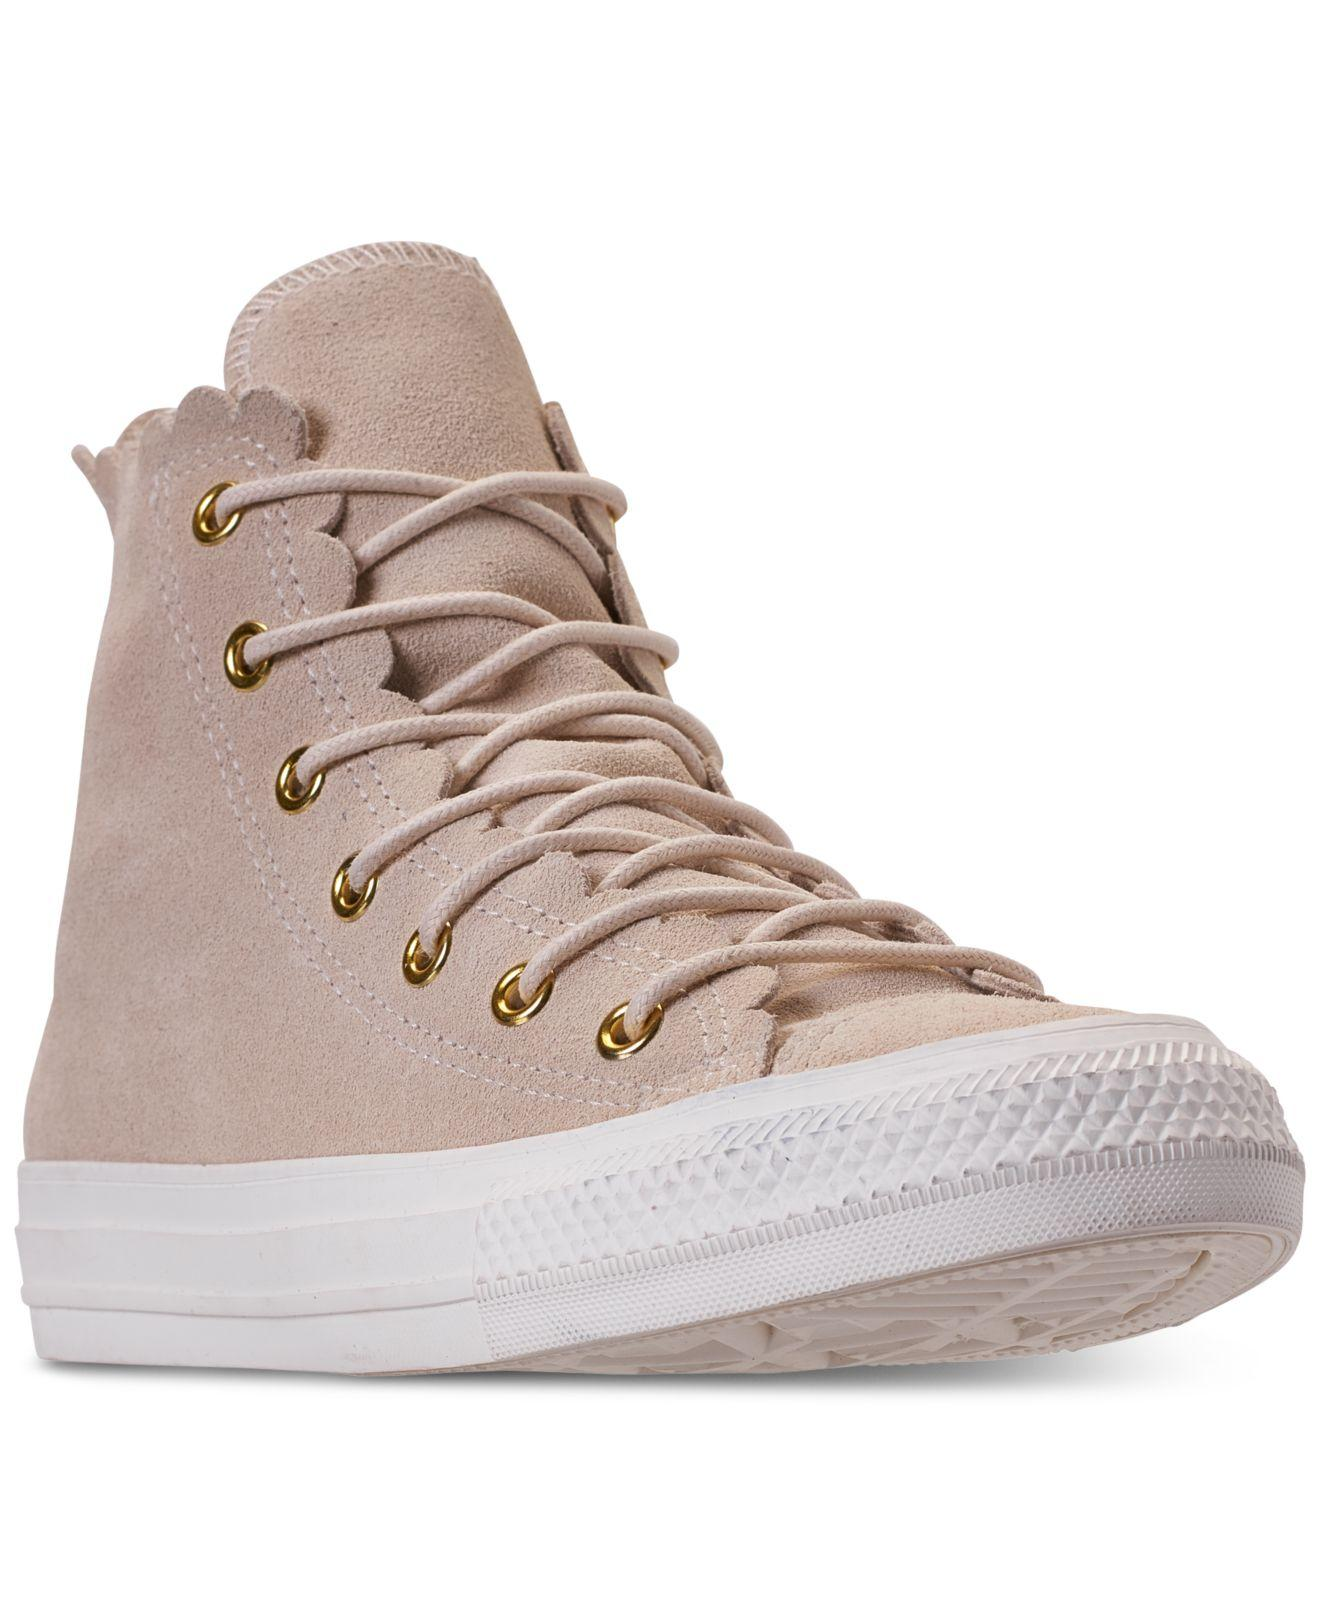 a53138f28e4eba Lyst - Converse Chuck Taylor All Star Scallop Natural - Save 28%